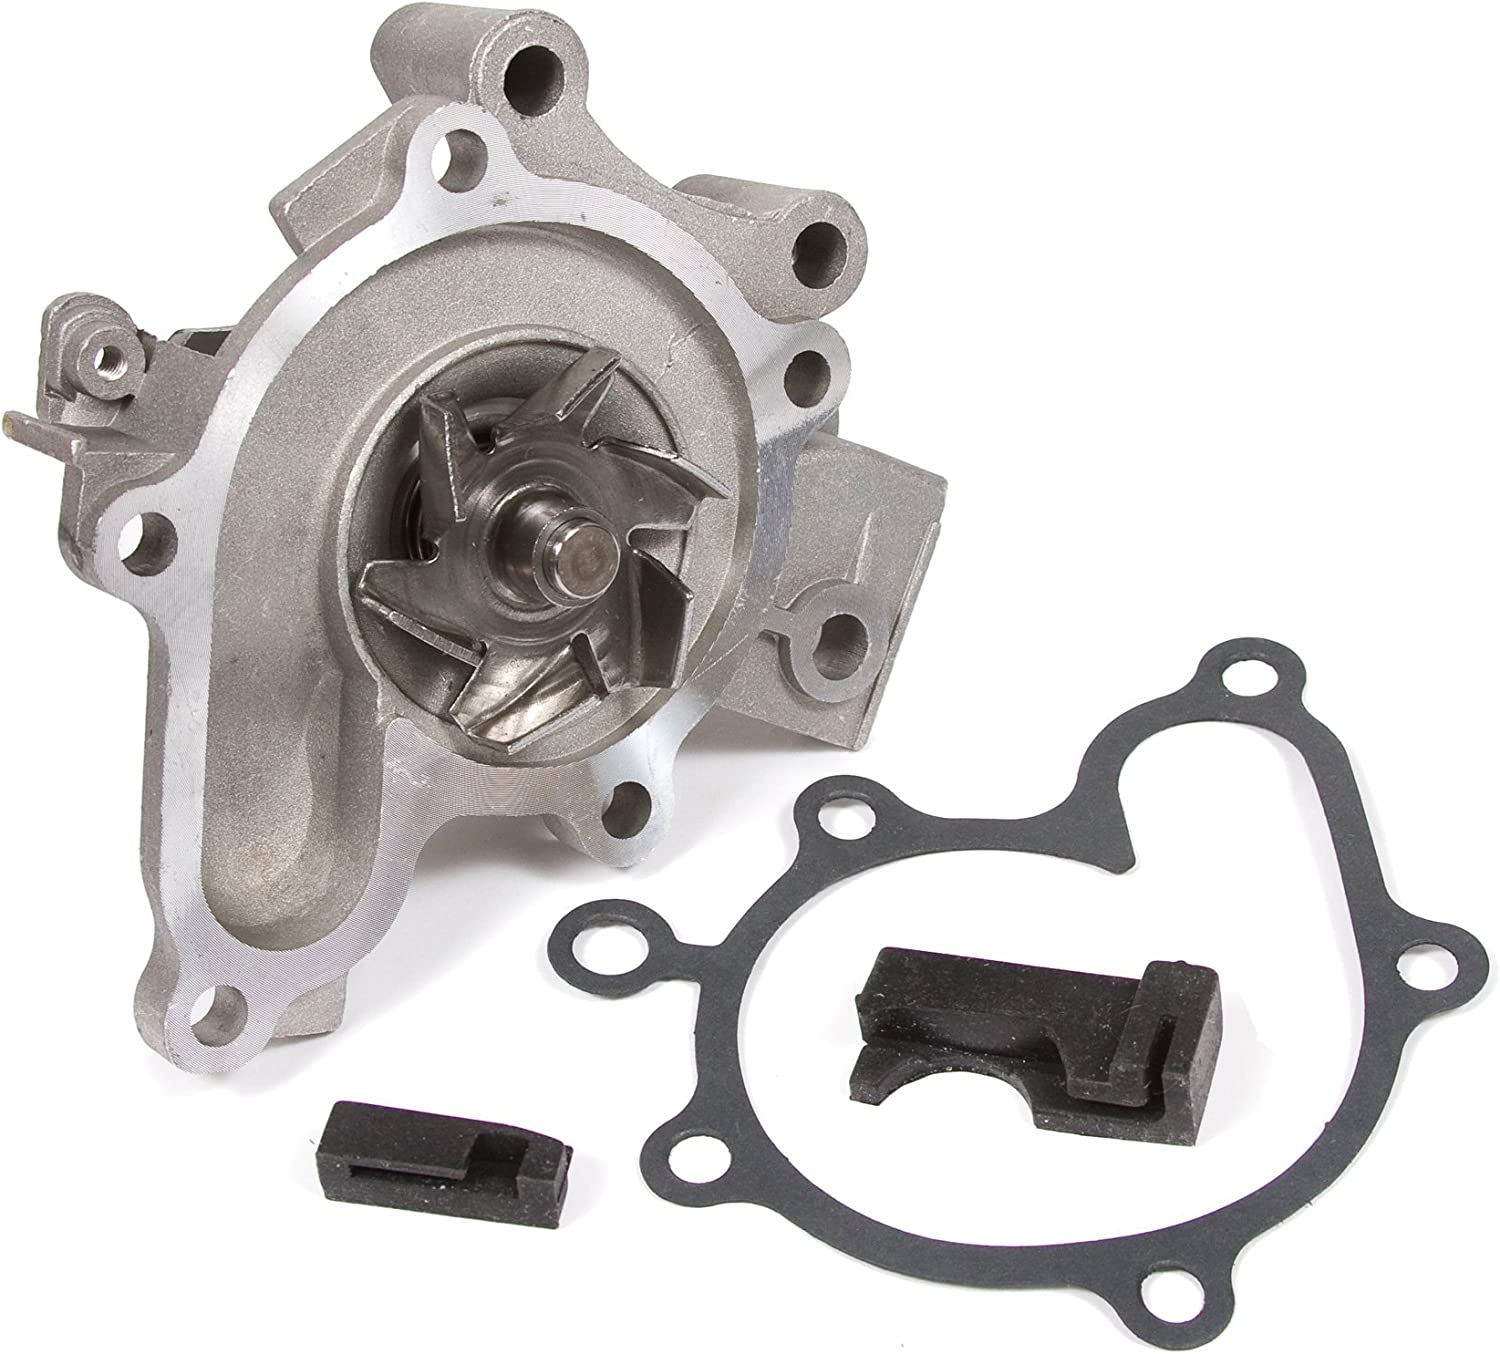 Evergreen TBK316VCT Compatible With 99-00 Mazda Protege 1.8L DOHC FP Timing Belt Kit Valve Cover Gasket Water Pump